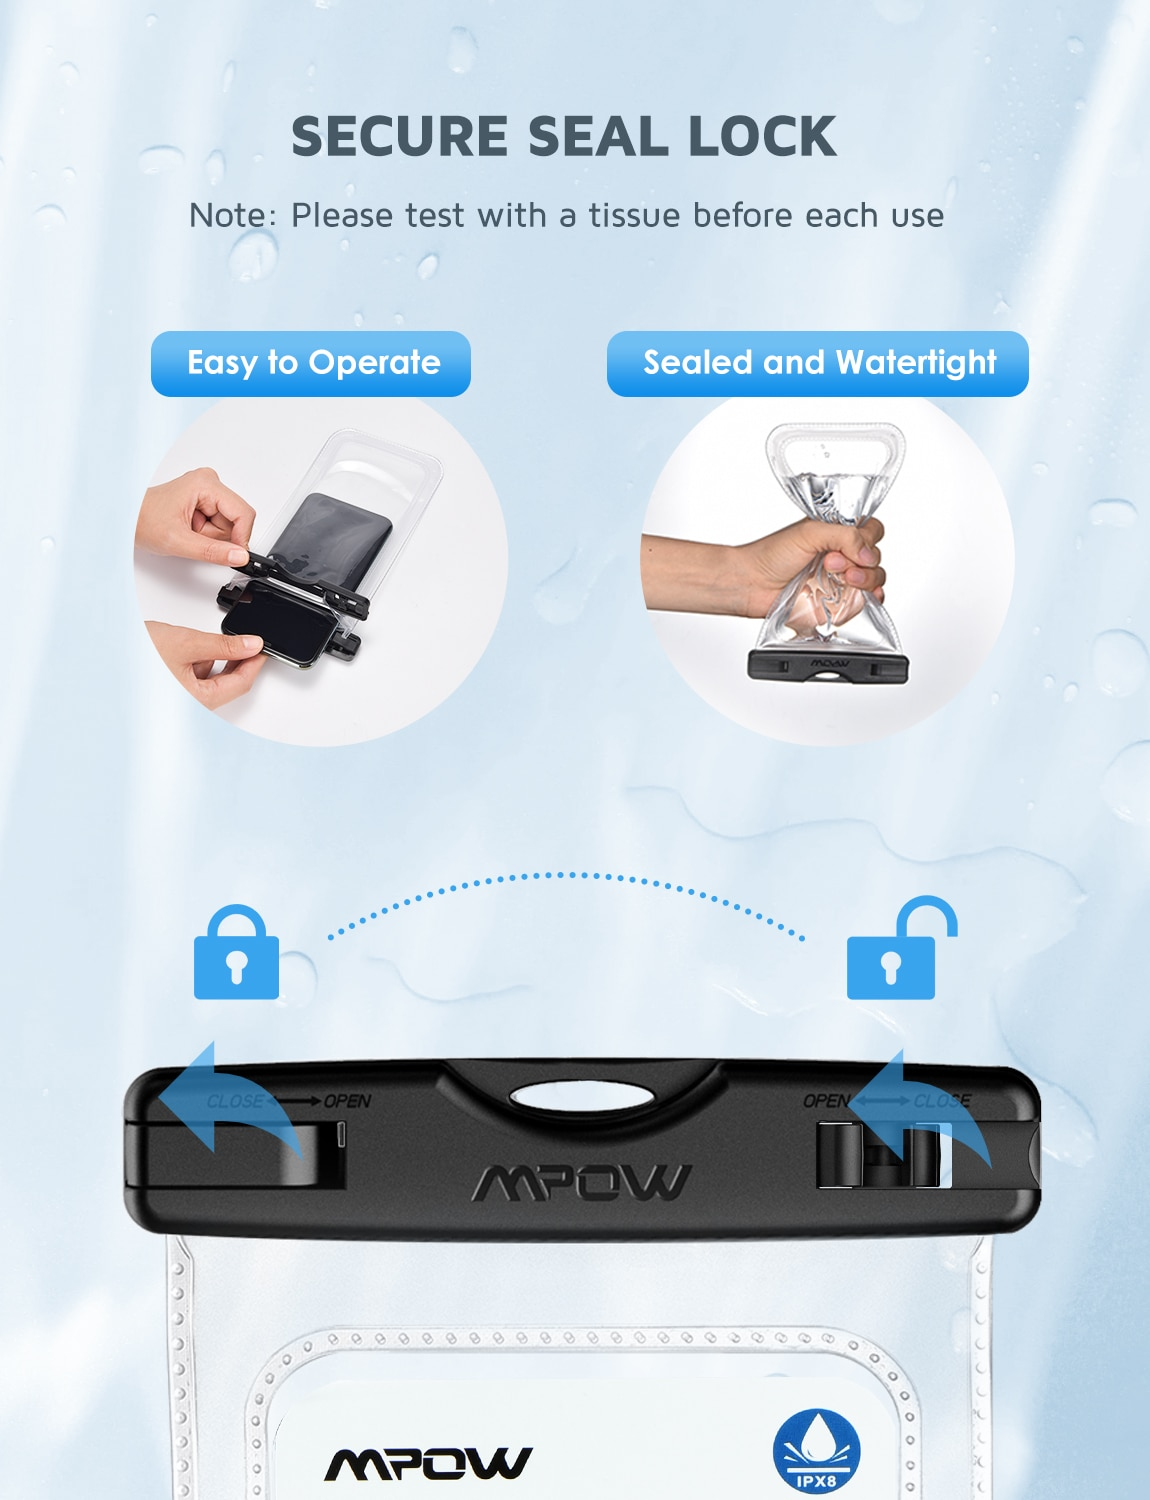 H6a169aa9688645e5beebb57248acb9e7J - 2PCS Mpow 097 IPX8 Waterproof Phone Bag Pouch Case Universal for 7.0 inch Phones Home Button Cutout Take Photo Underwater IP68